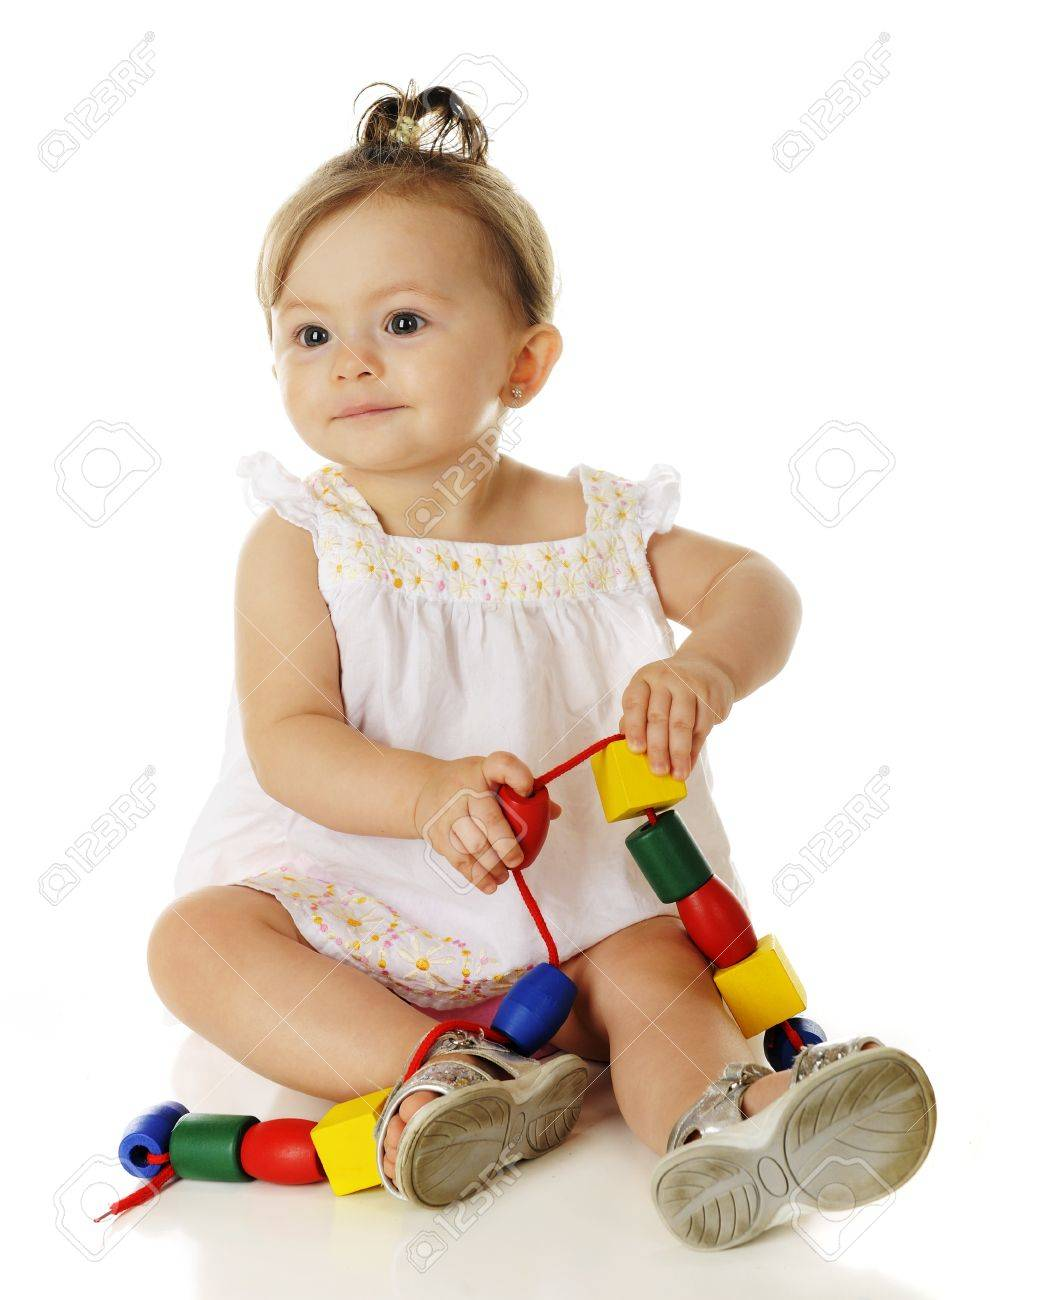 An Adorable Baby Girl Happily Playing With Large Wooden Beads